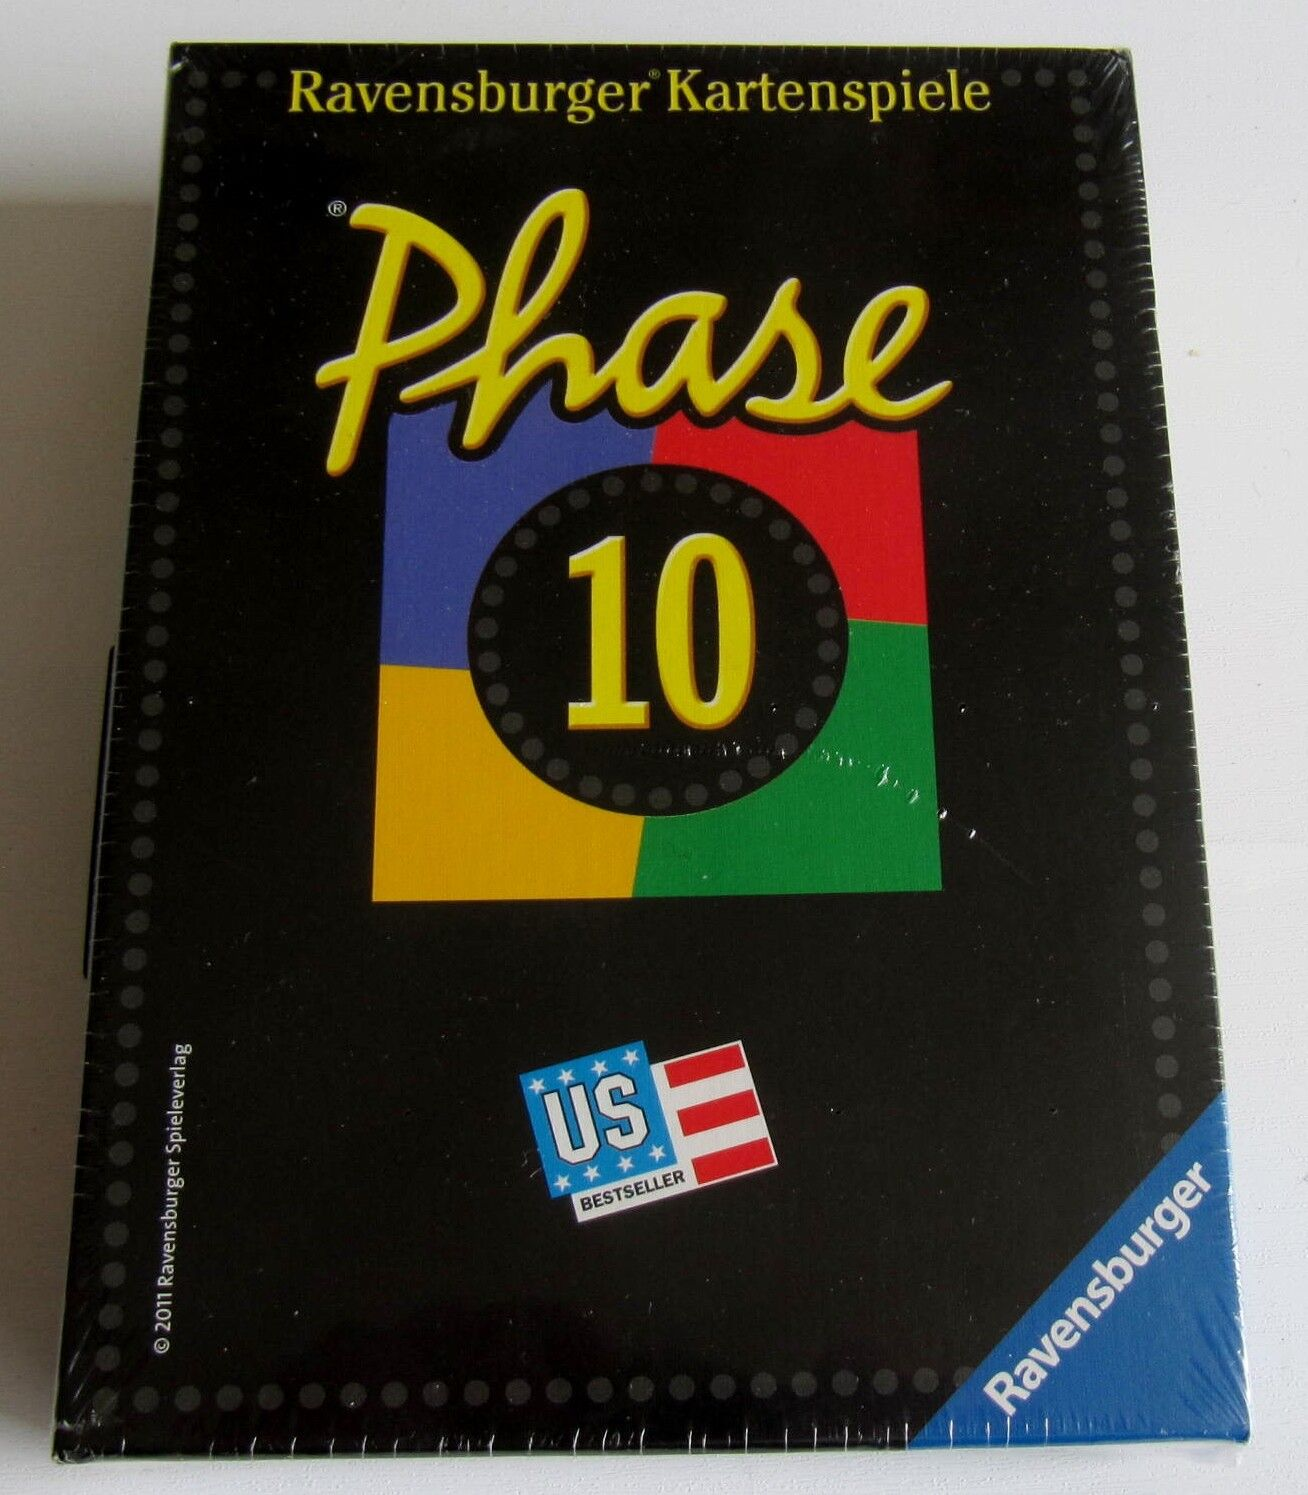 NEU & OVP: PHASE 10  Also NEU in FOLIE